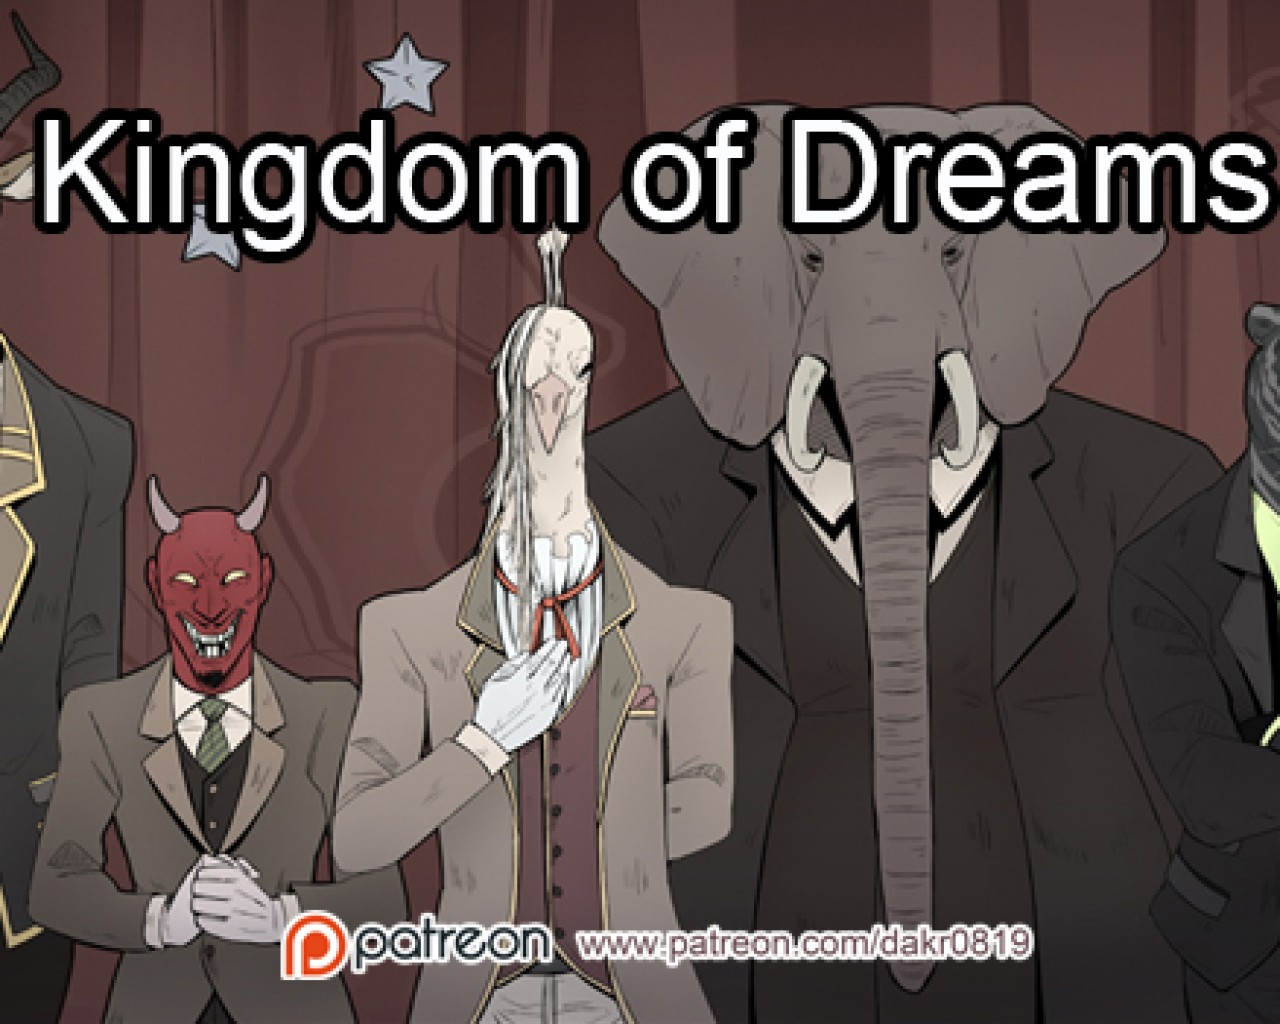 Poster Image for Kingdom of Dreams